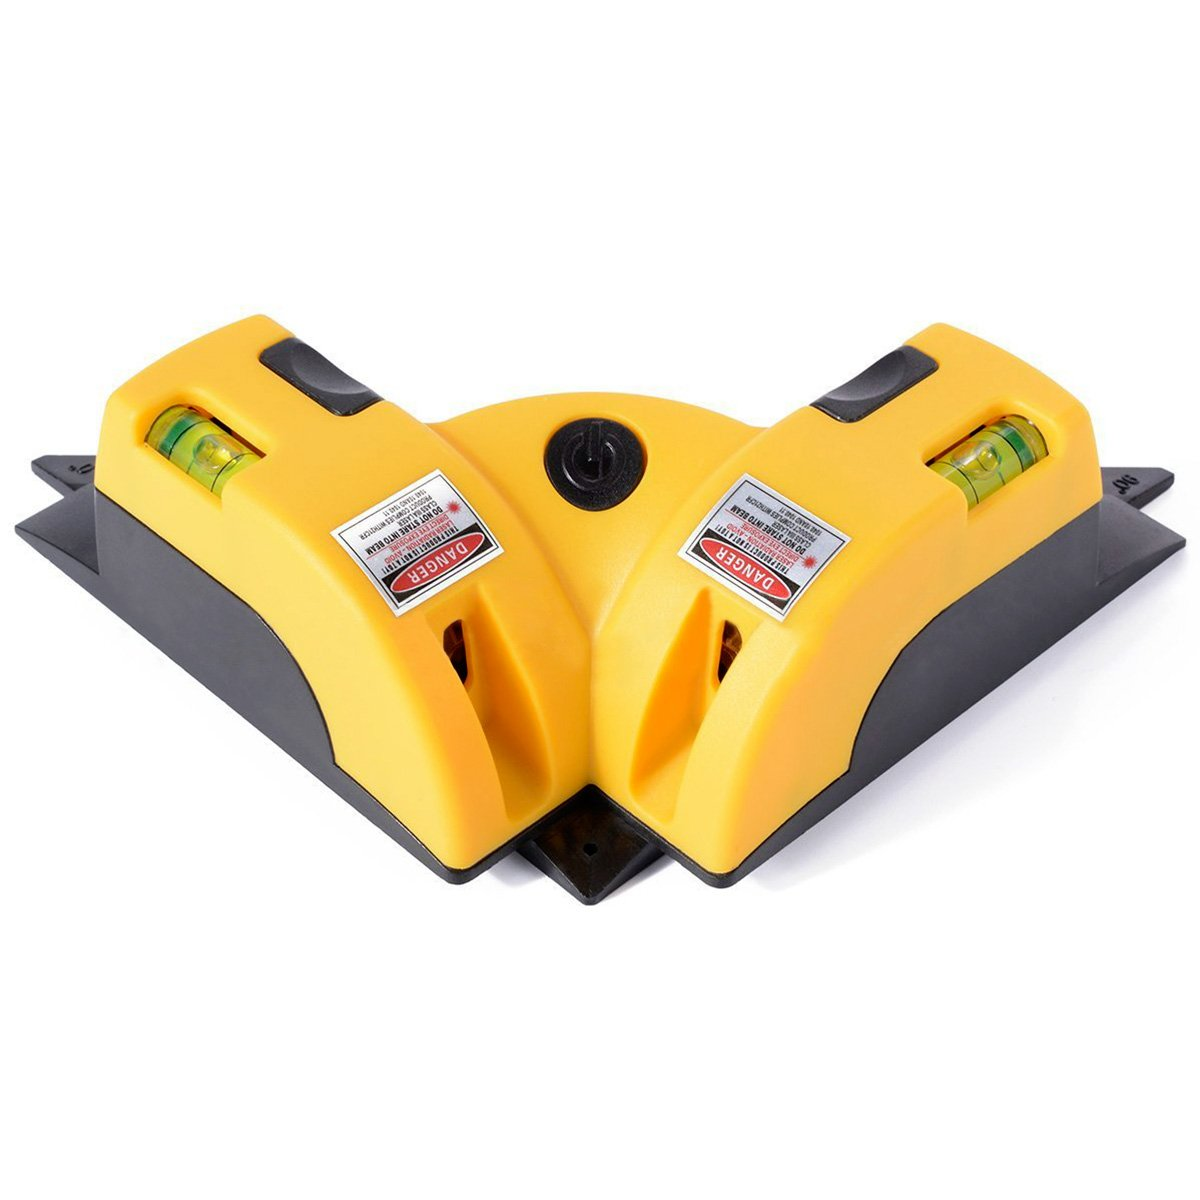 QWORK Right Angle 90 Degree Horizontal & Vertical Laser Level Line Projection Square Level Laser with Two Suction Cups